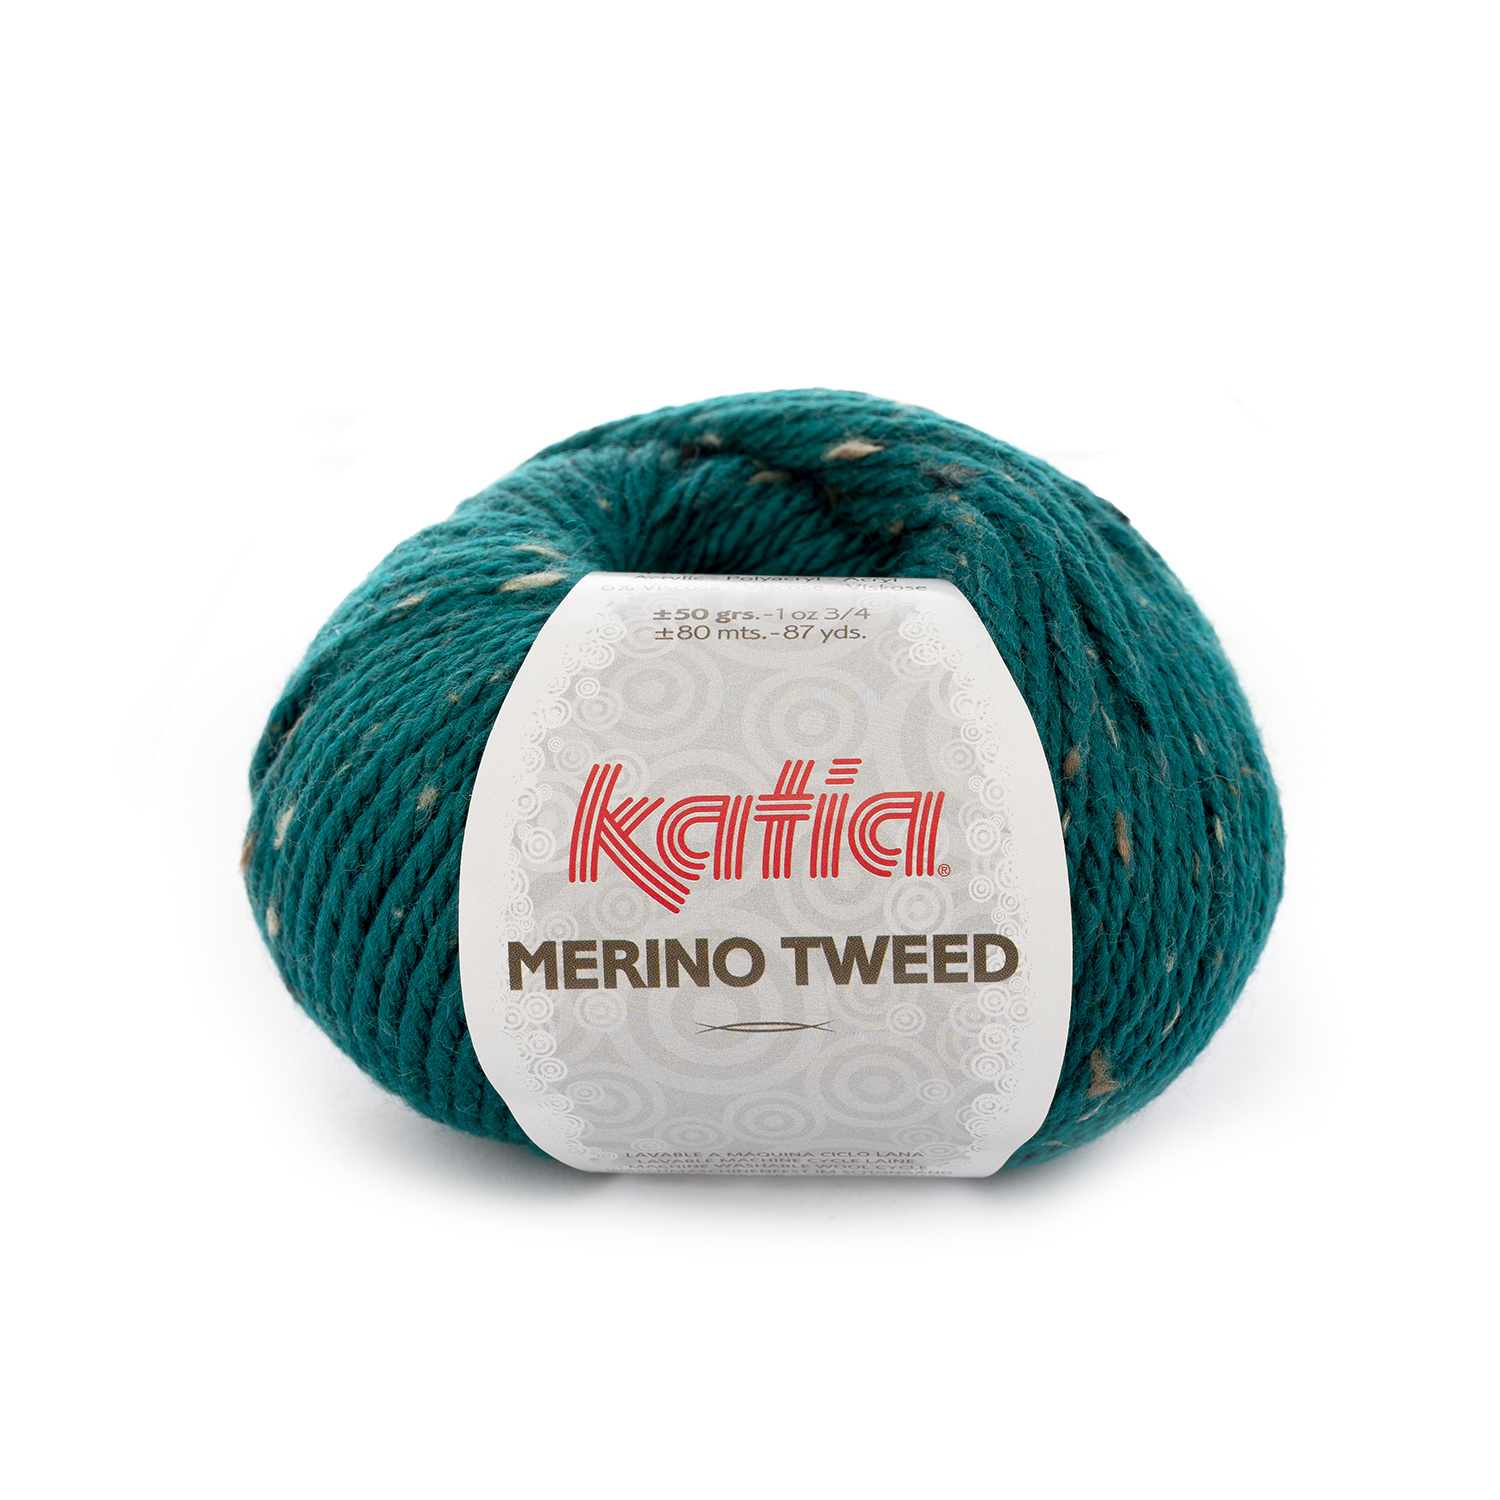 Merino Tweed 311 Emerald green